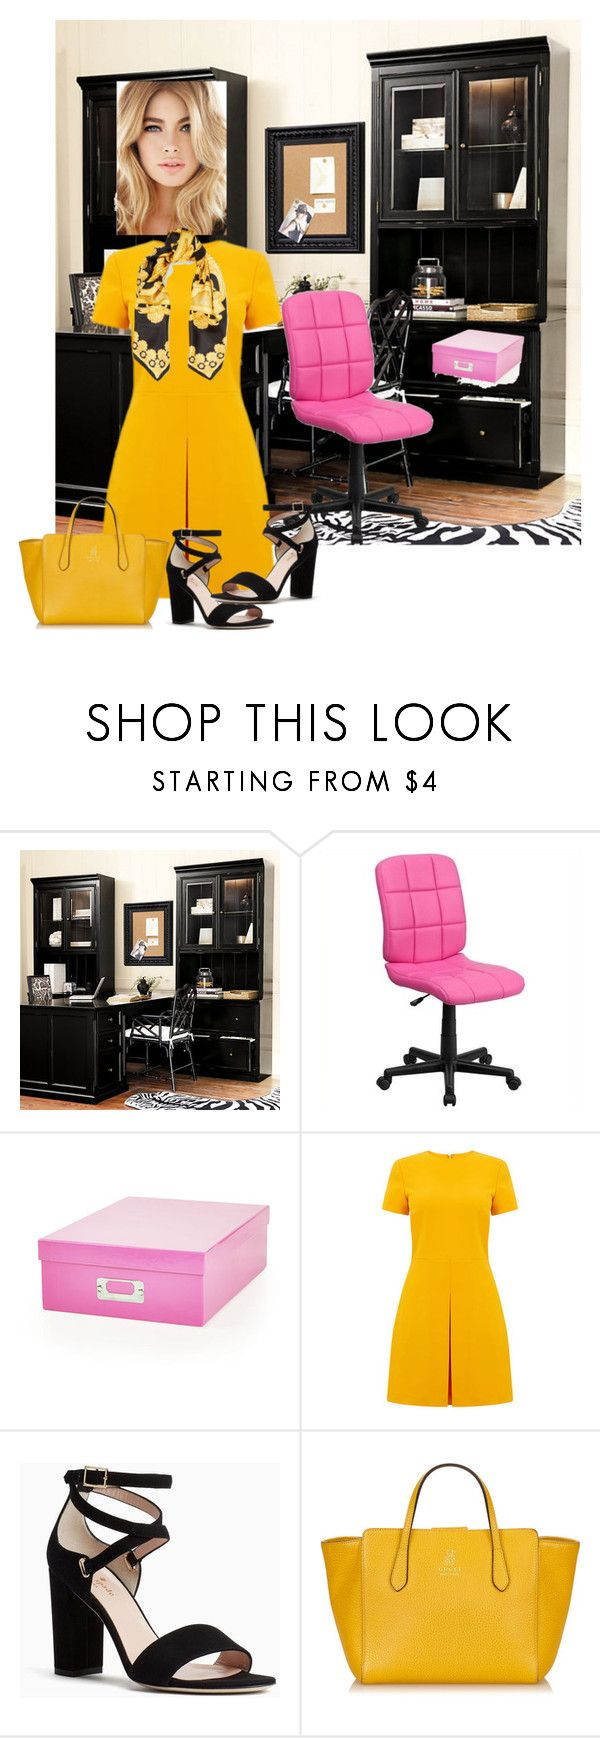 """Another Day at the Office"" by sherrysrosecottage-1 ❤ liked on Polyvore featuring Ballard Designs, Flash Furniture, Warehouse, Kate Spade, Gucci and Versace"